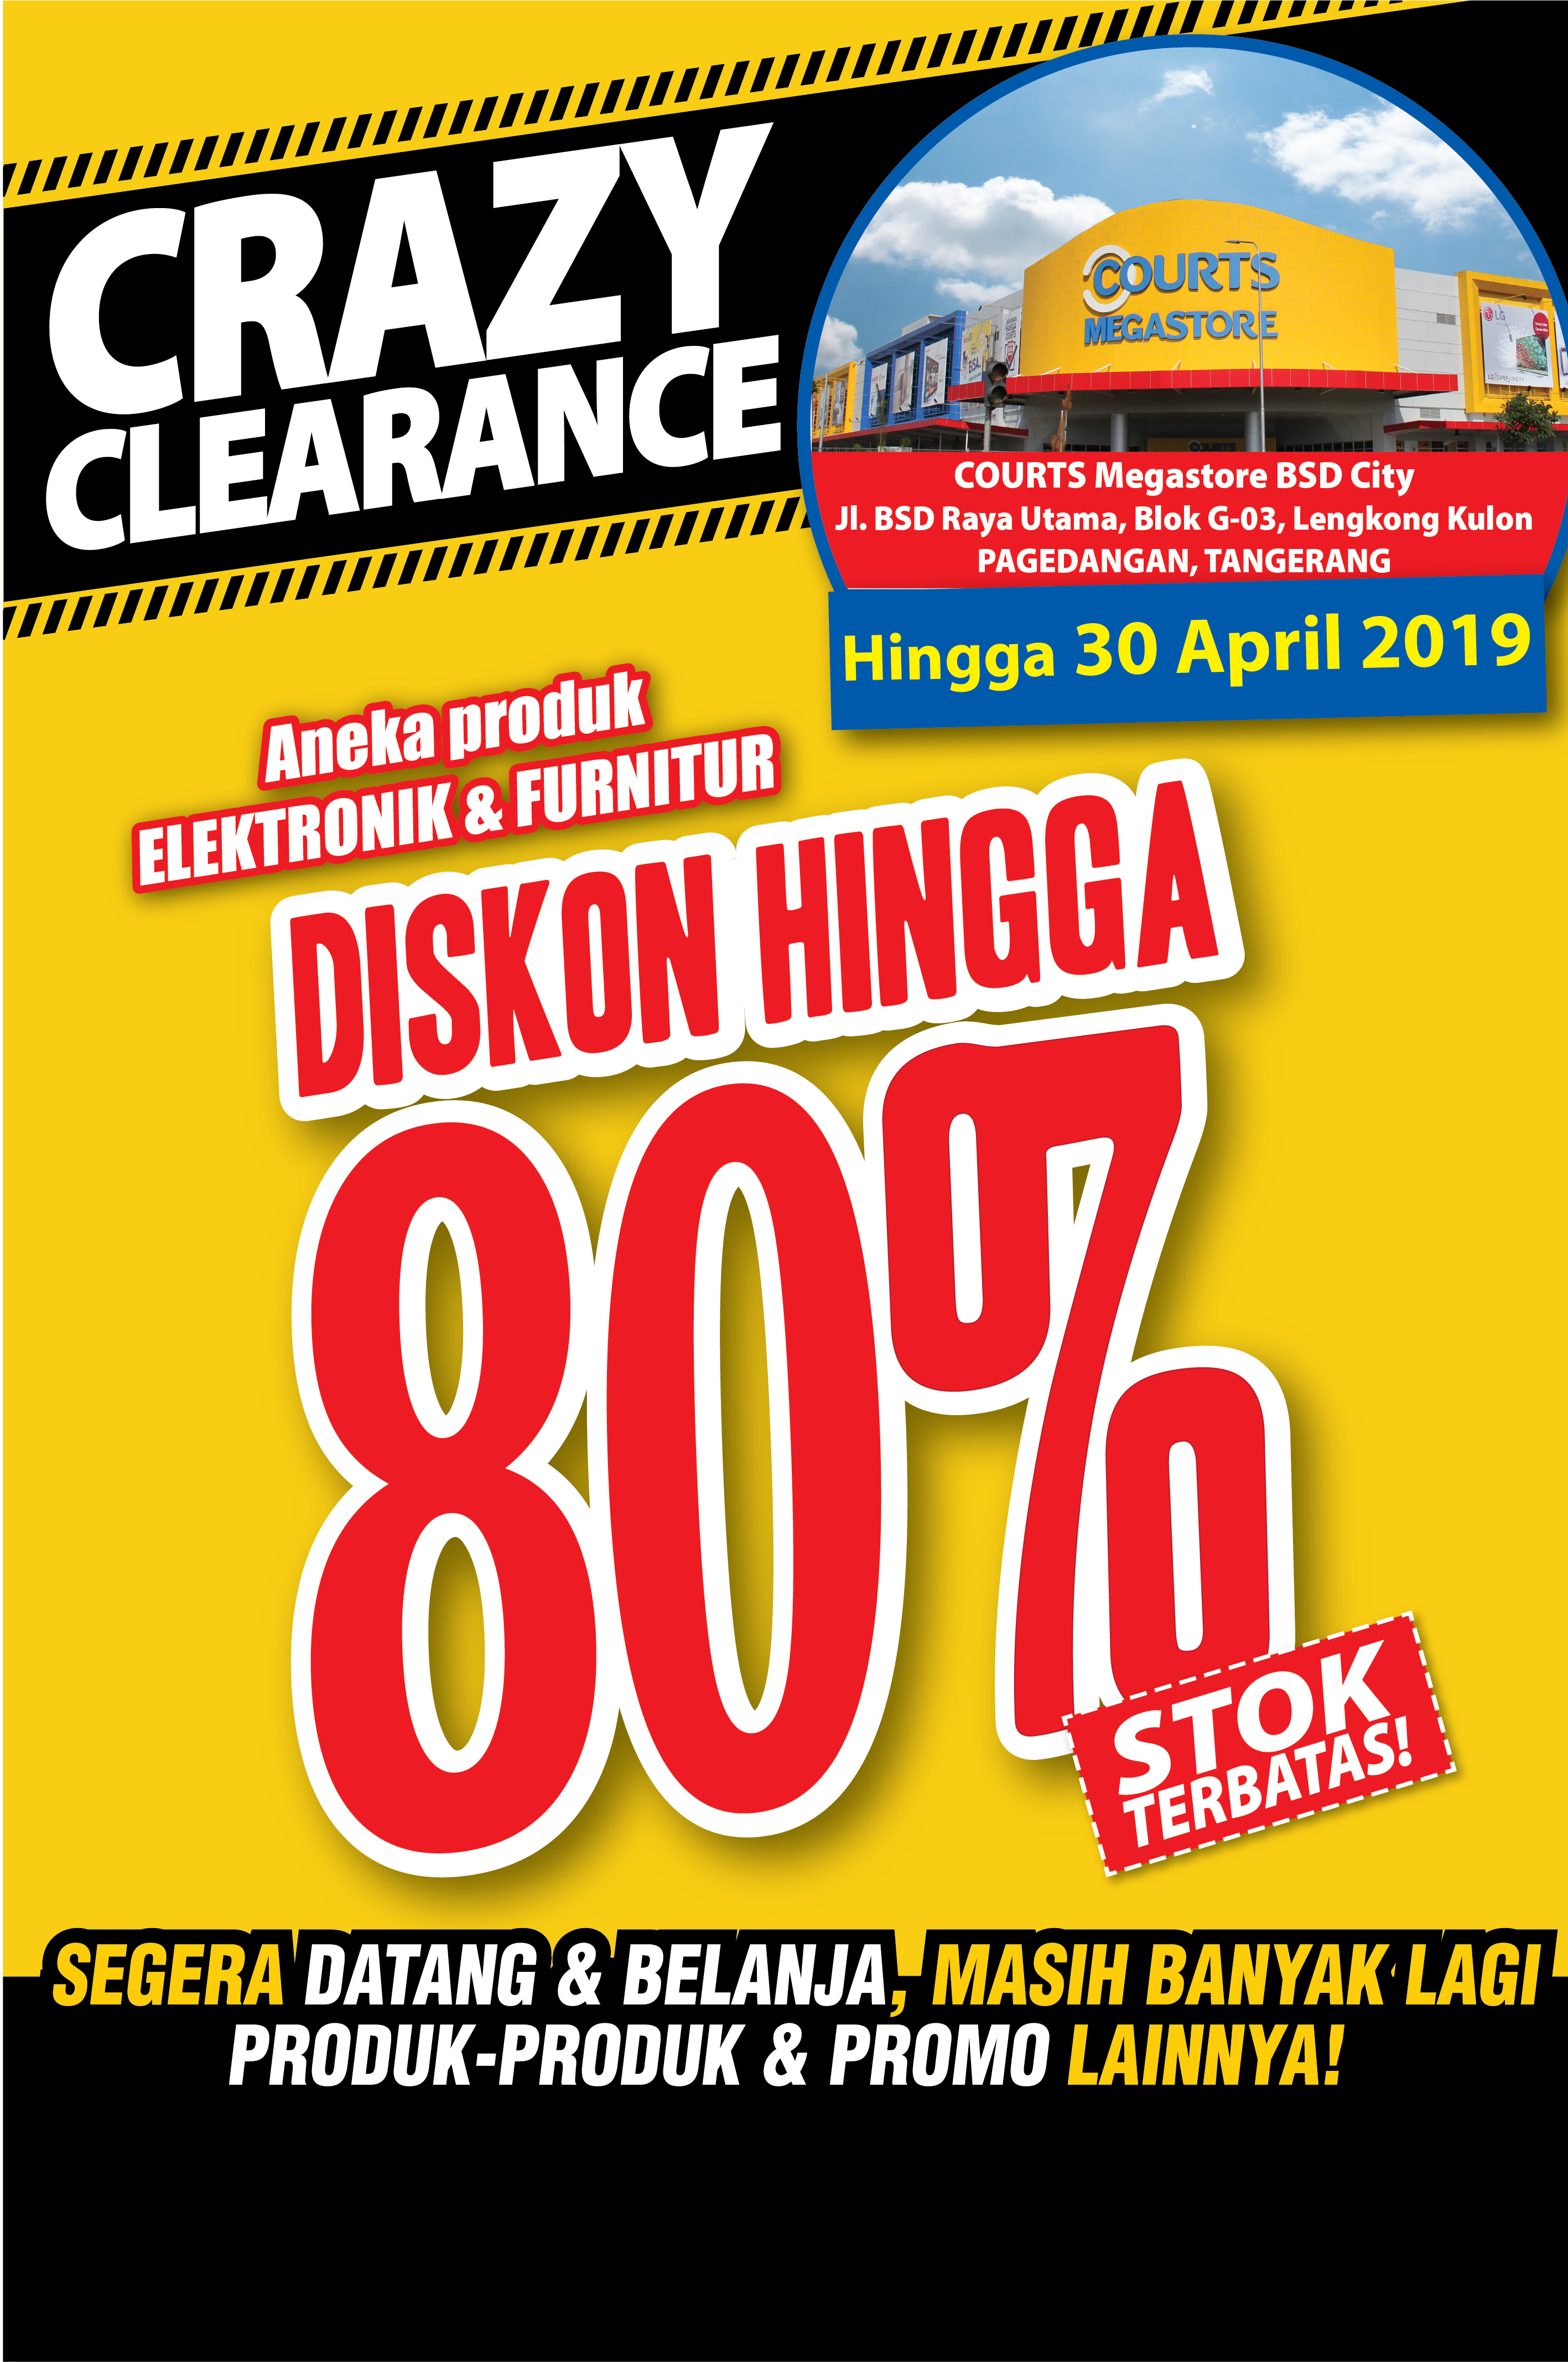 COURTS Crazy Clearance Megastore BSD